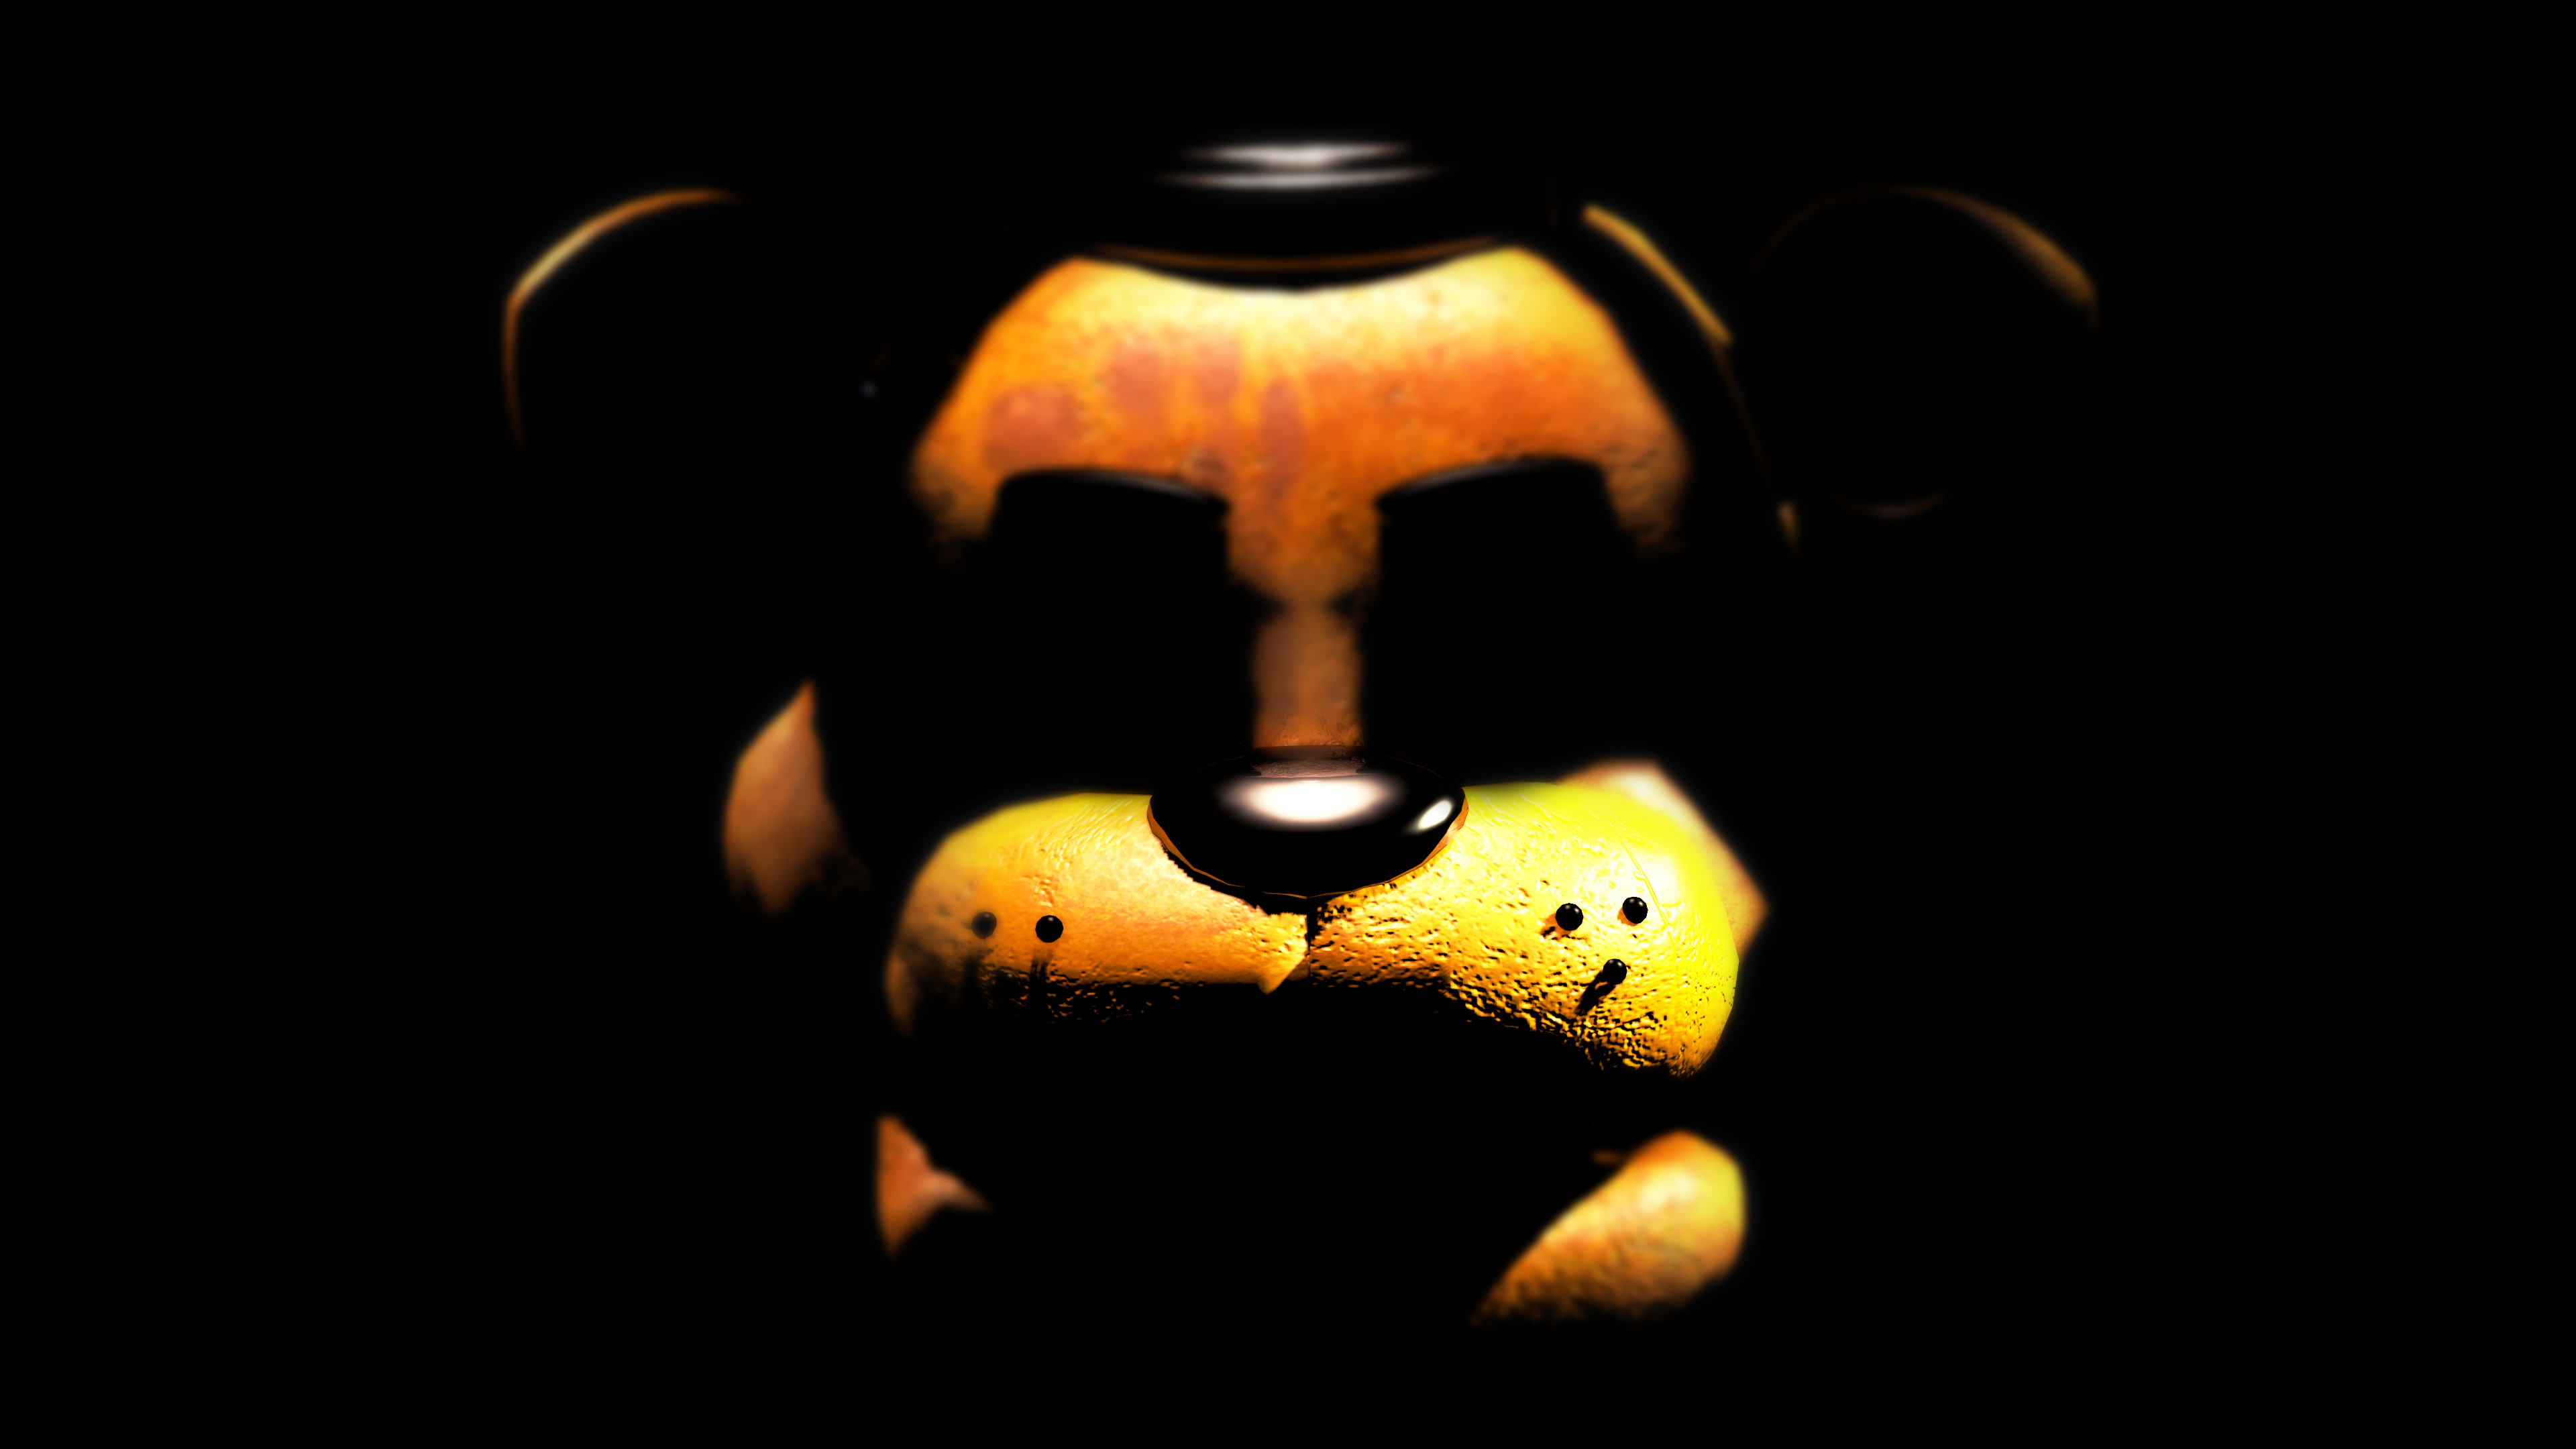 3840x2160 ... Five Nights at Freddy's | Poster/Wallpaper #1 by GravityPro